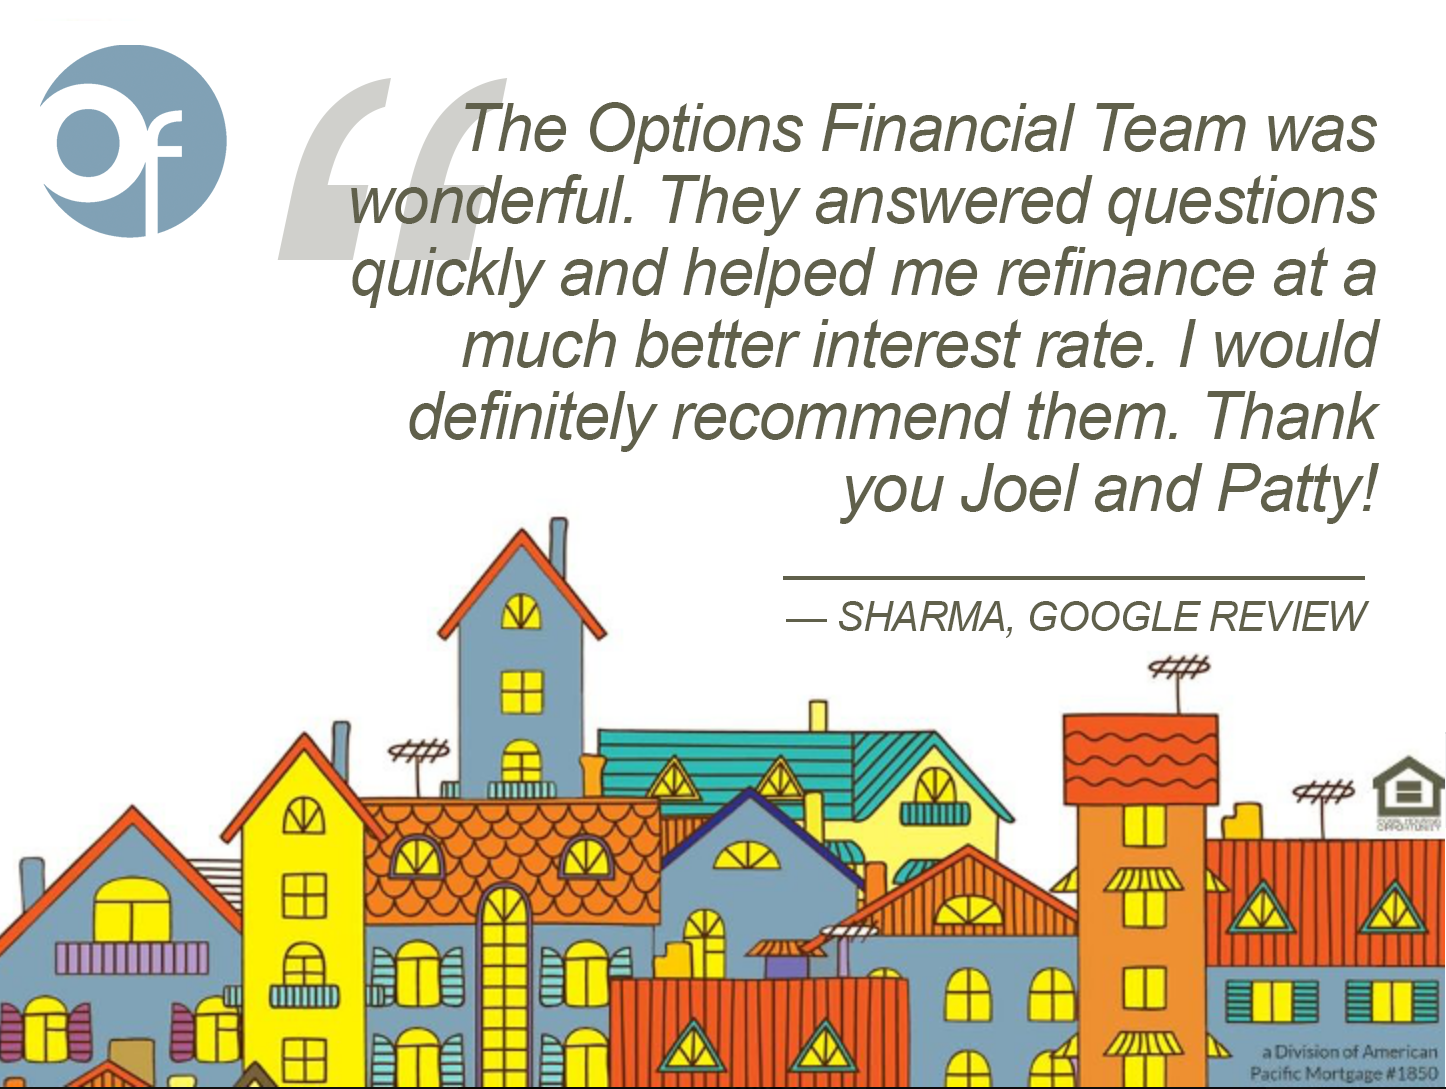 The Options Financial Team was wonderful. They answered questions quickly and helped me refinance at a much better interest rate. I would definitely recommend them. Thank you Joel and Patty!